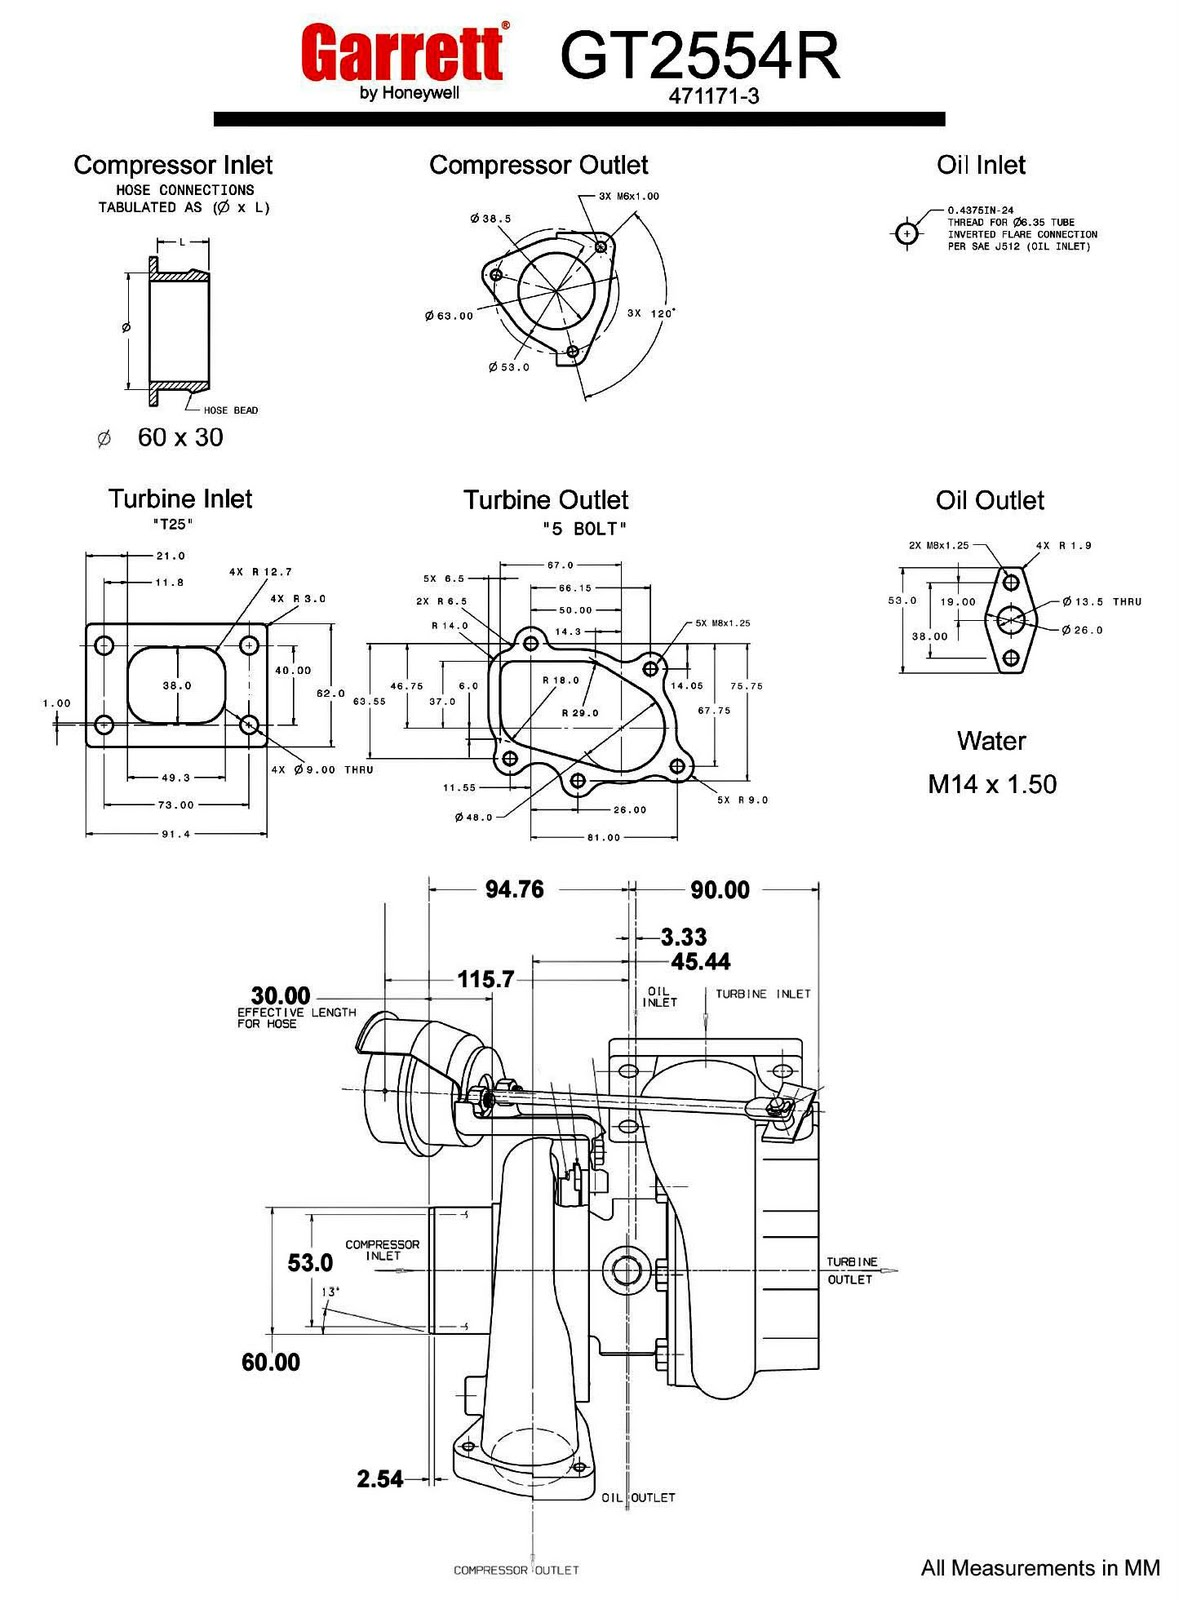 Garrett Gt25r Gt2554r 60 Trim 270 Hp Turbocharger Specs On This Diagram You Can See How The Impeller Connects Gt25 Turbo Dual Ball Bearing Measurements In Mm Flanges Diameter Flange Honeywell 1445x1961